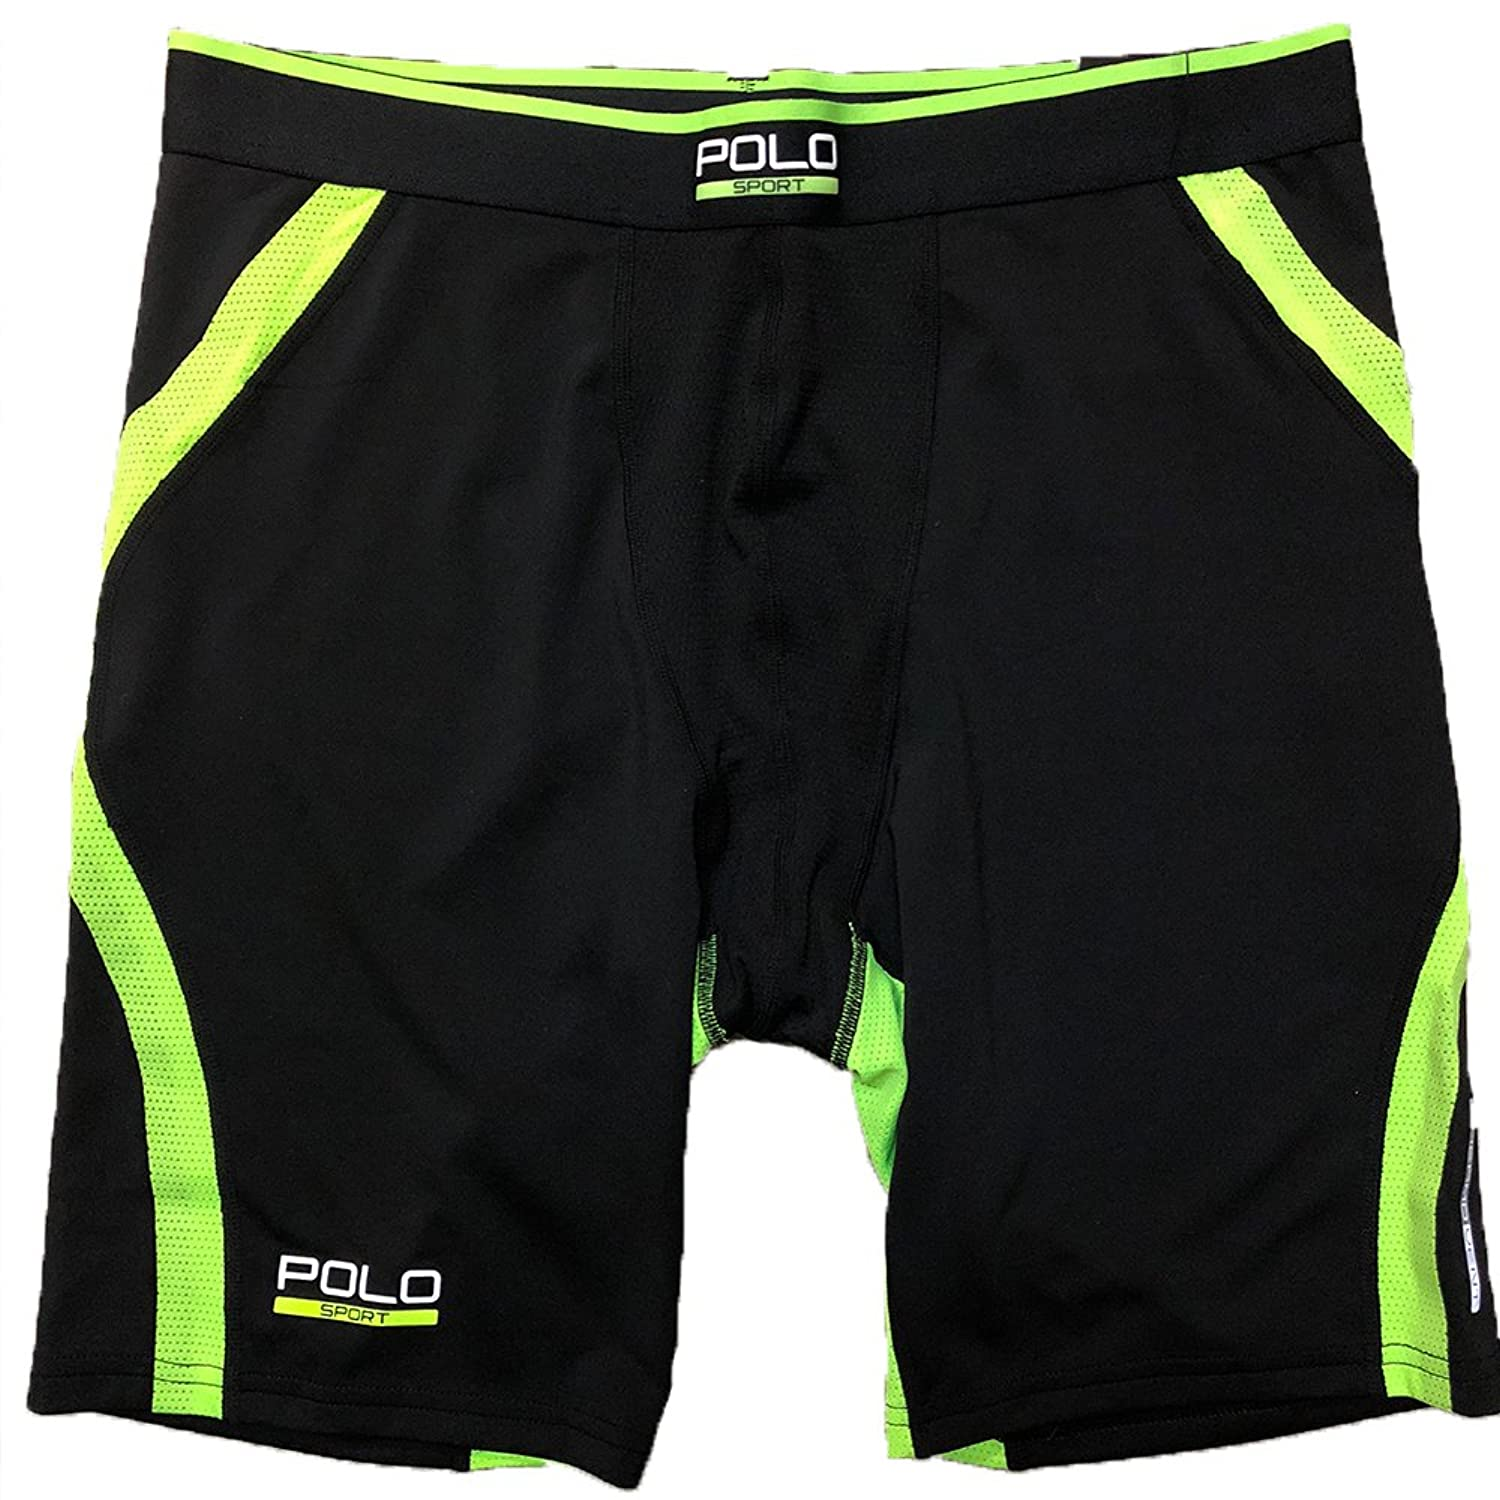 2fd561ef4f ... coupon code for polo sport ralph lauren mens dark black green stretch  compression shorts 312df c883f